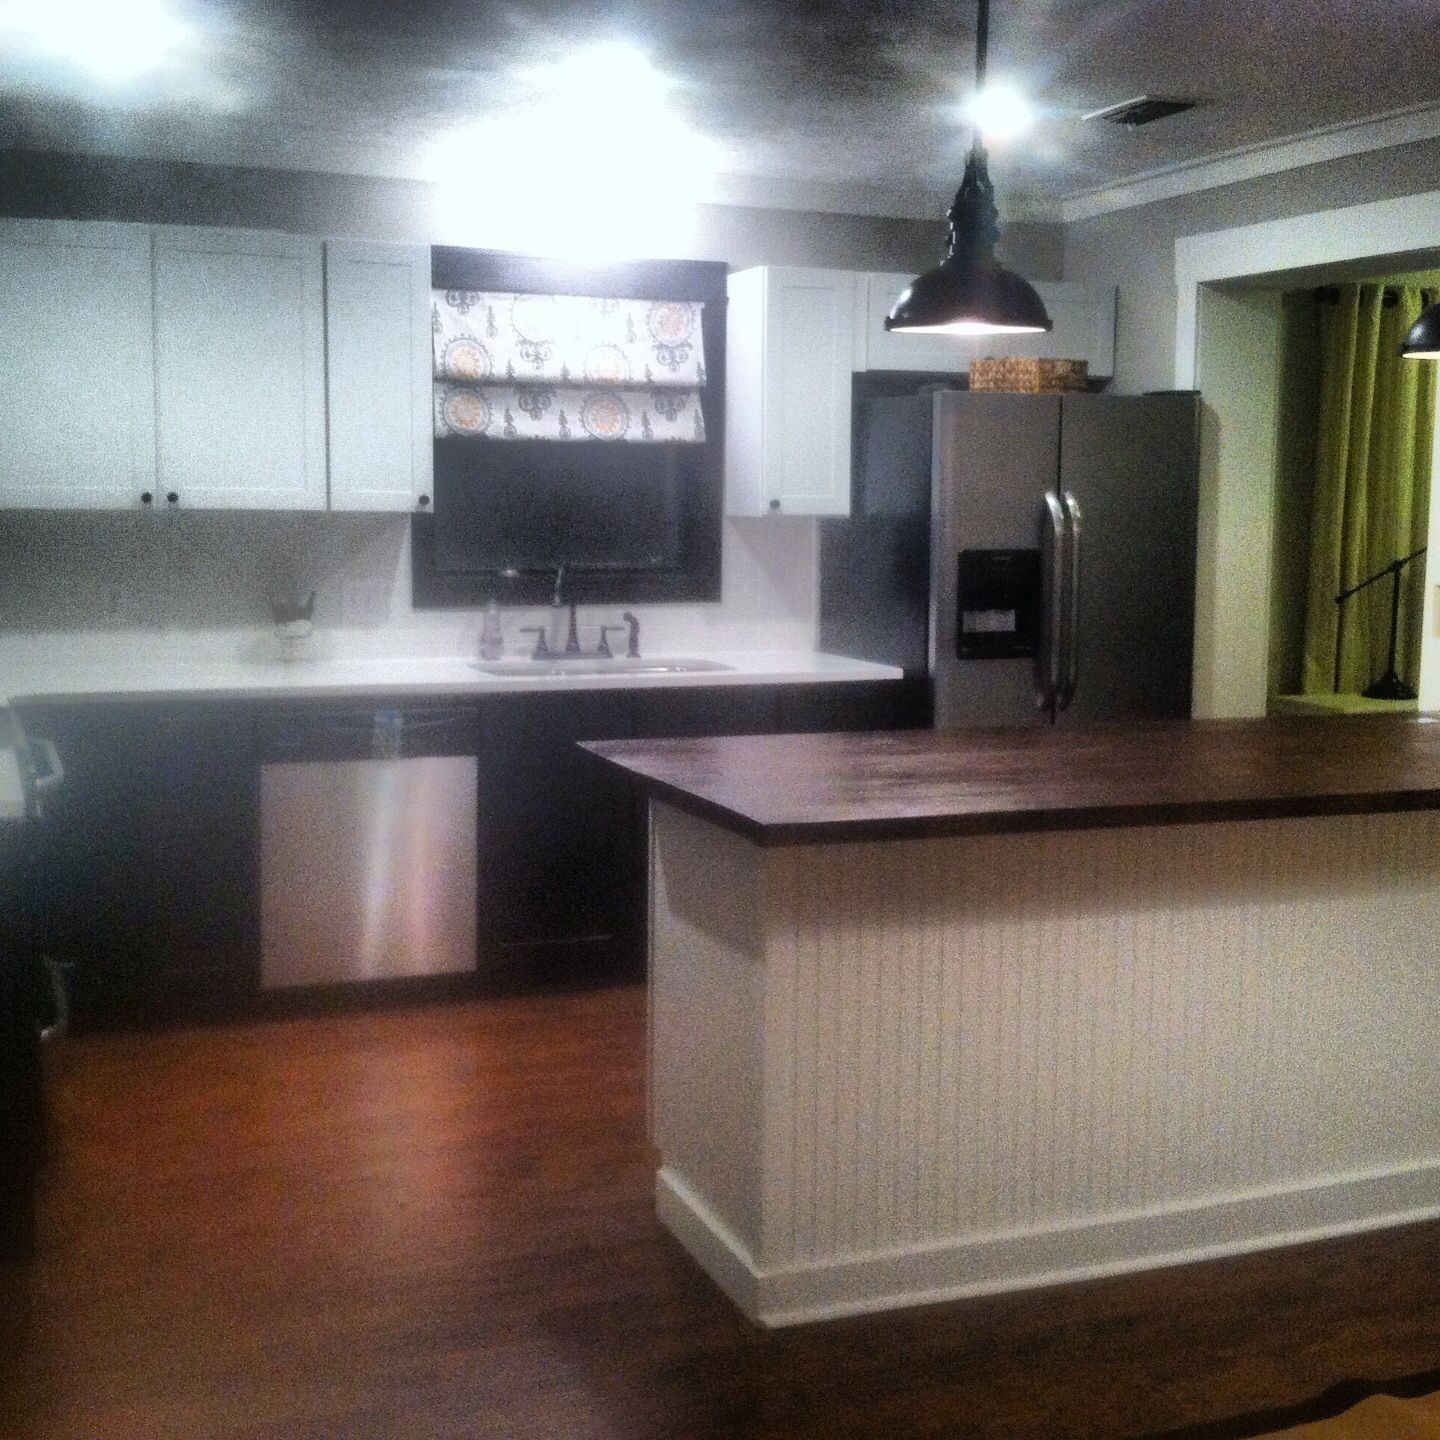 Lowe S Knotty Pine Cabinets: Kitchen Remodel Done! In Stock Cabinets From Lowes